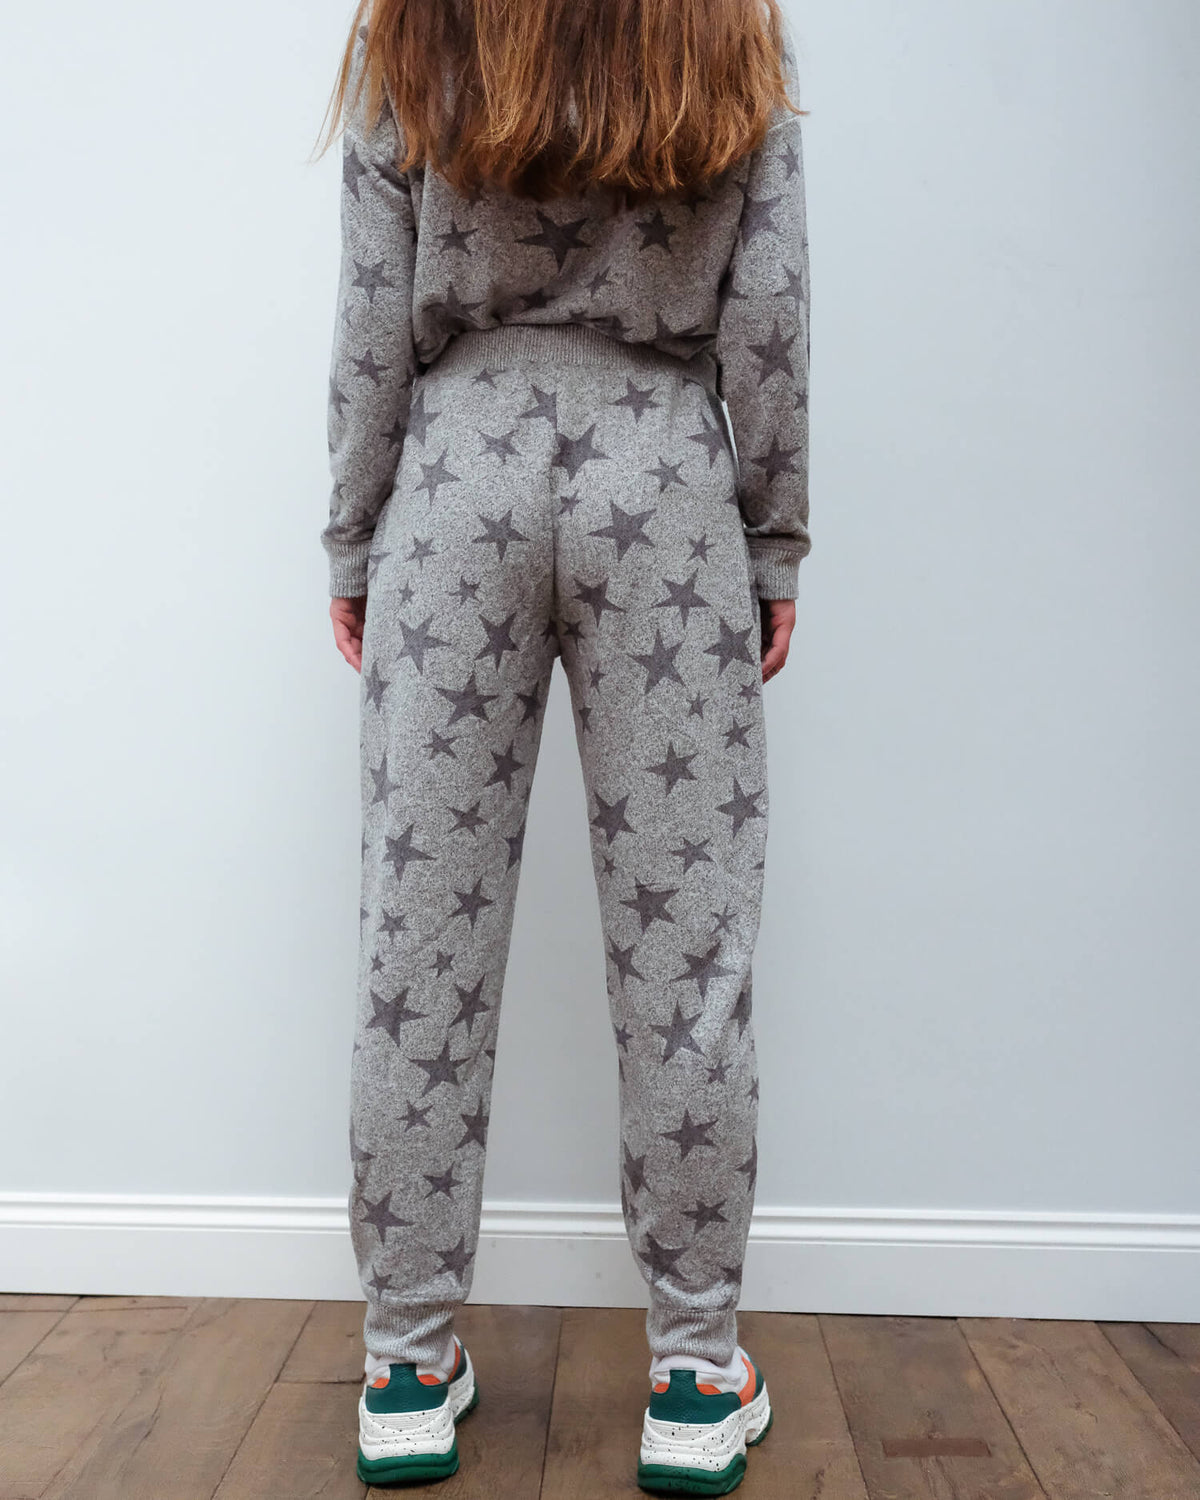 R Devon star trousers